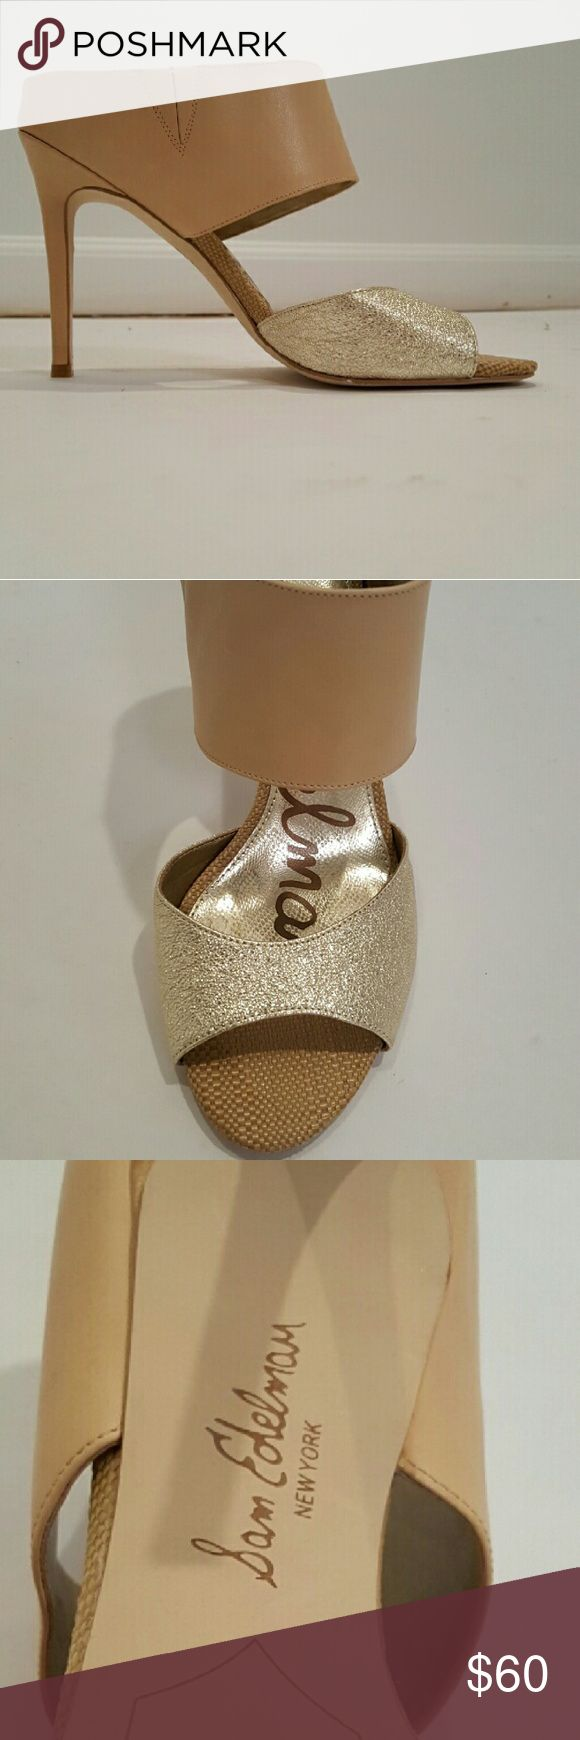 Nude and gold sandal heel Never worn Sam Edelman heels. Perfect shoe for dressing up or down. Very very comfortable! Sam Edelman Shoes Sandals